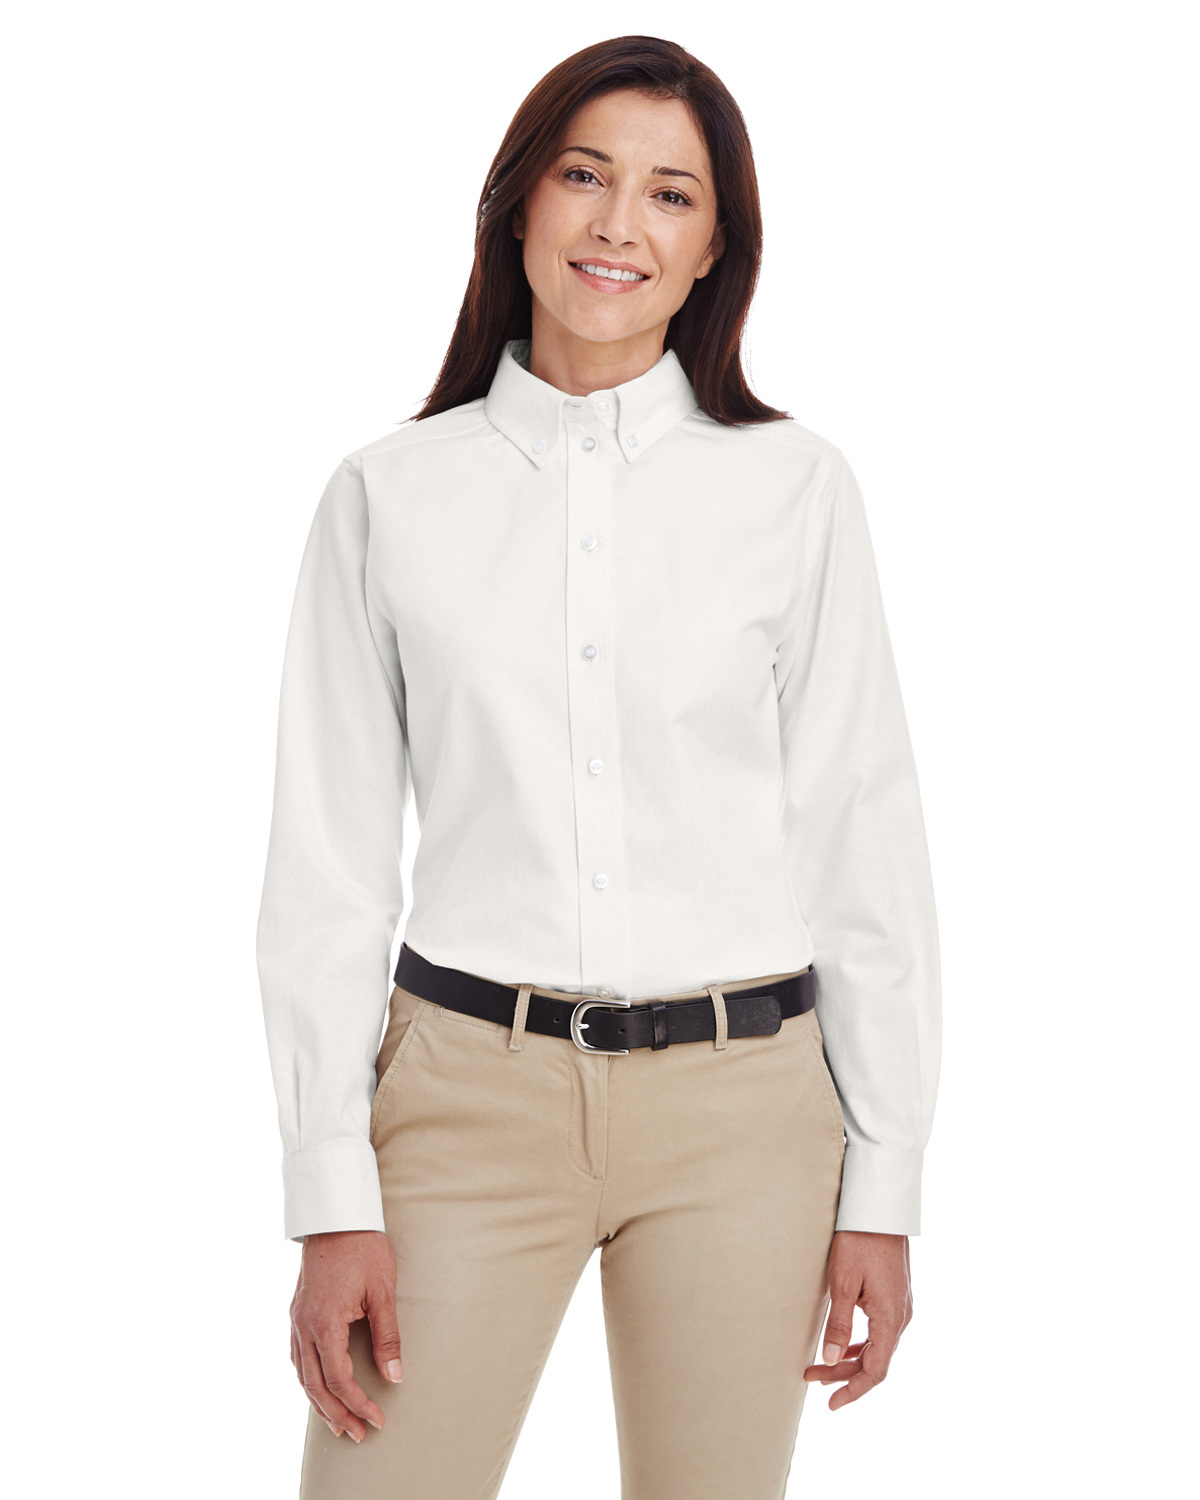 Ladies' Foundation 100% Cotton Long-Sleeve Twill Shirt with Teflon